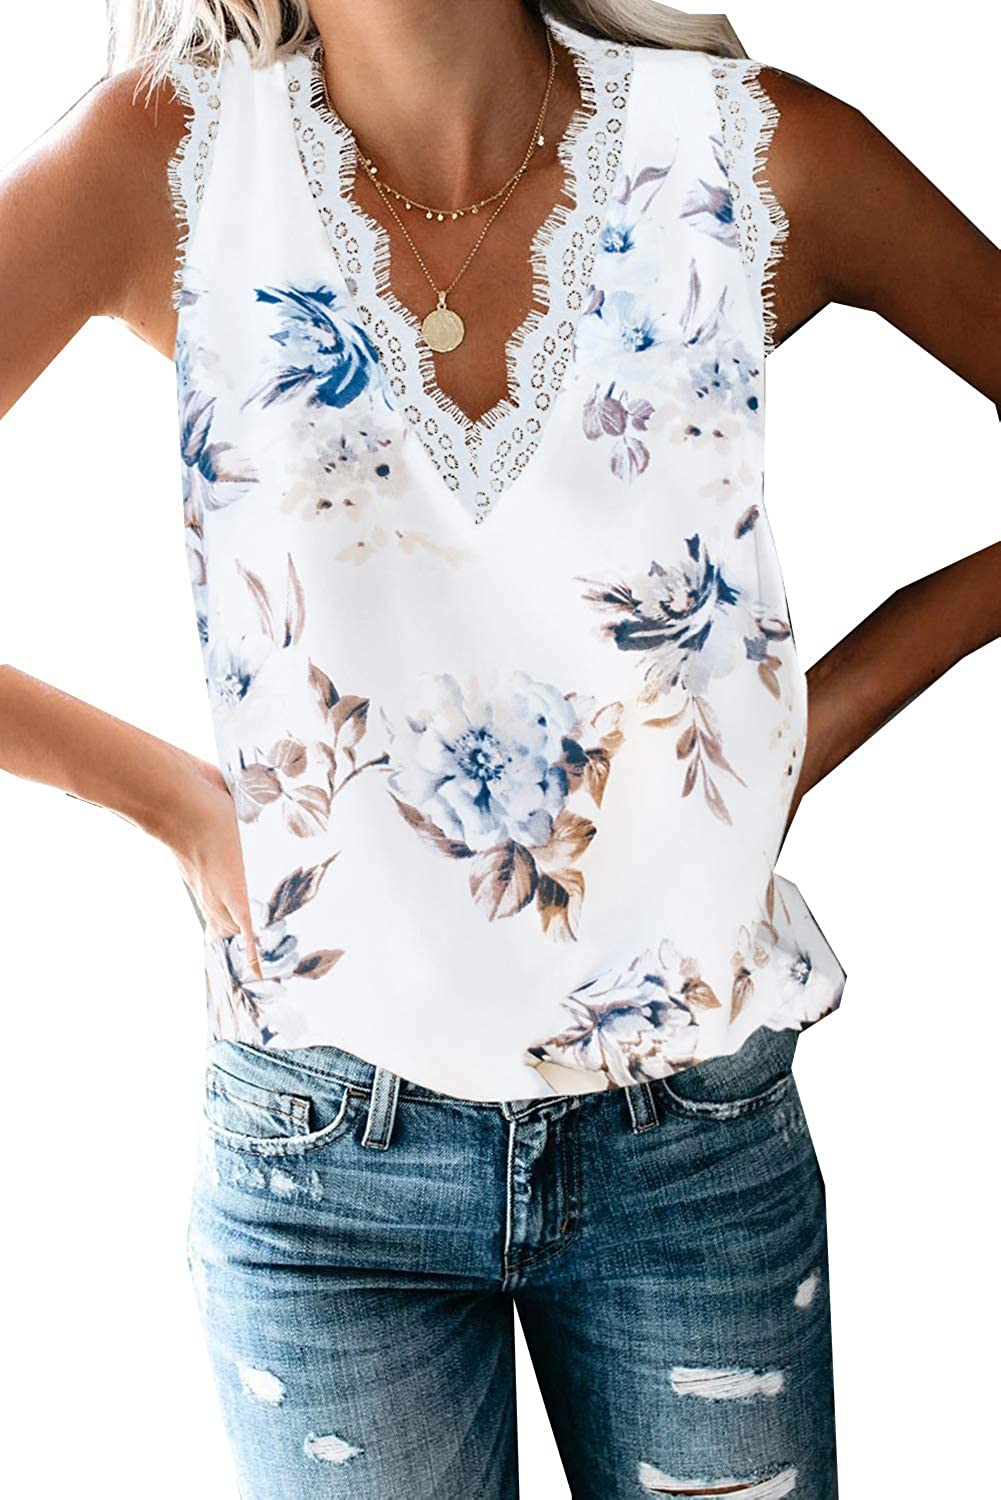 Women's V Neck Lace Trim Tank Tops Casual Loose Sleeveless Blouse Shirts